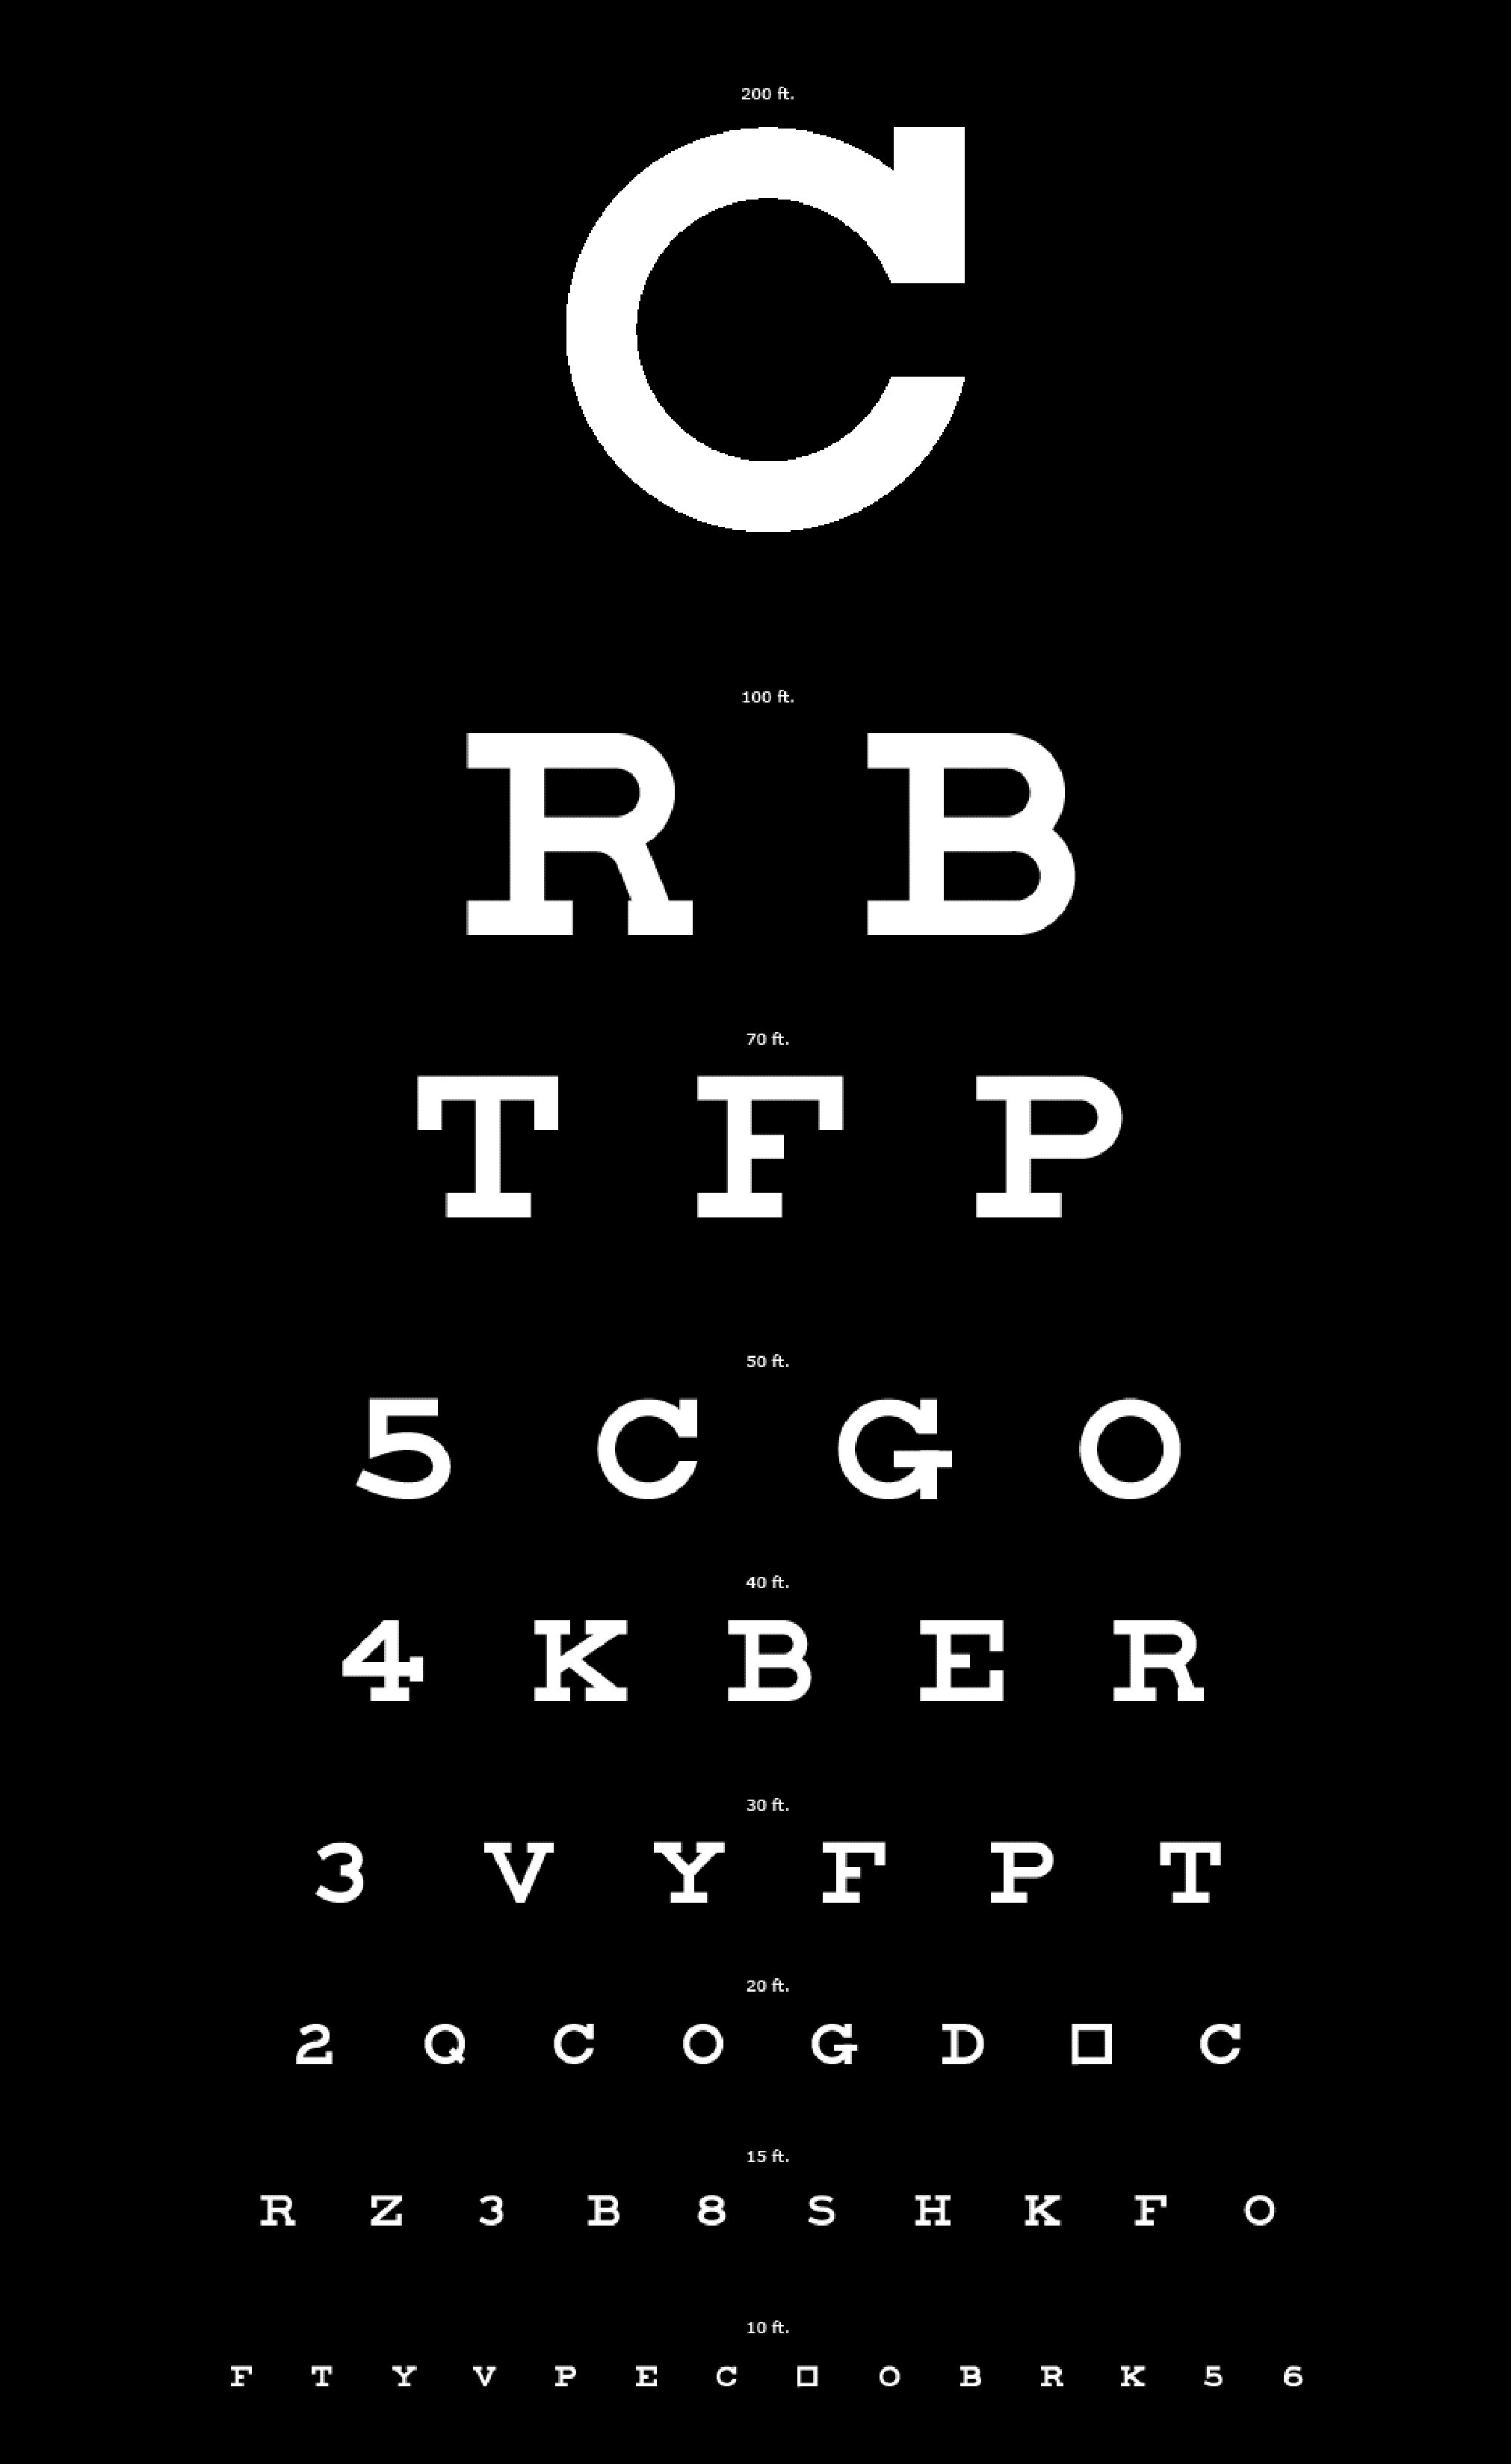 Eyechart White Letters on Black - Easy to See